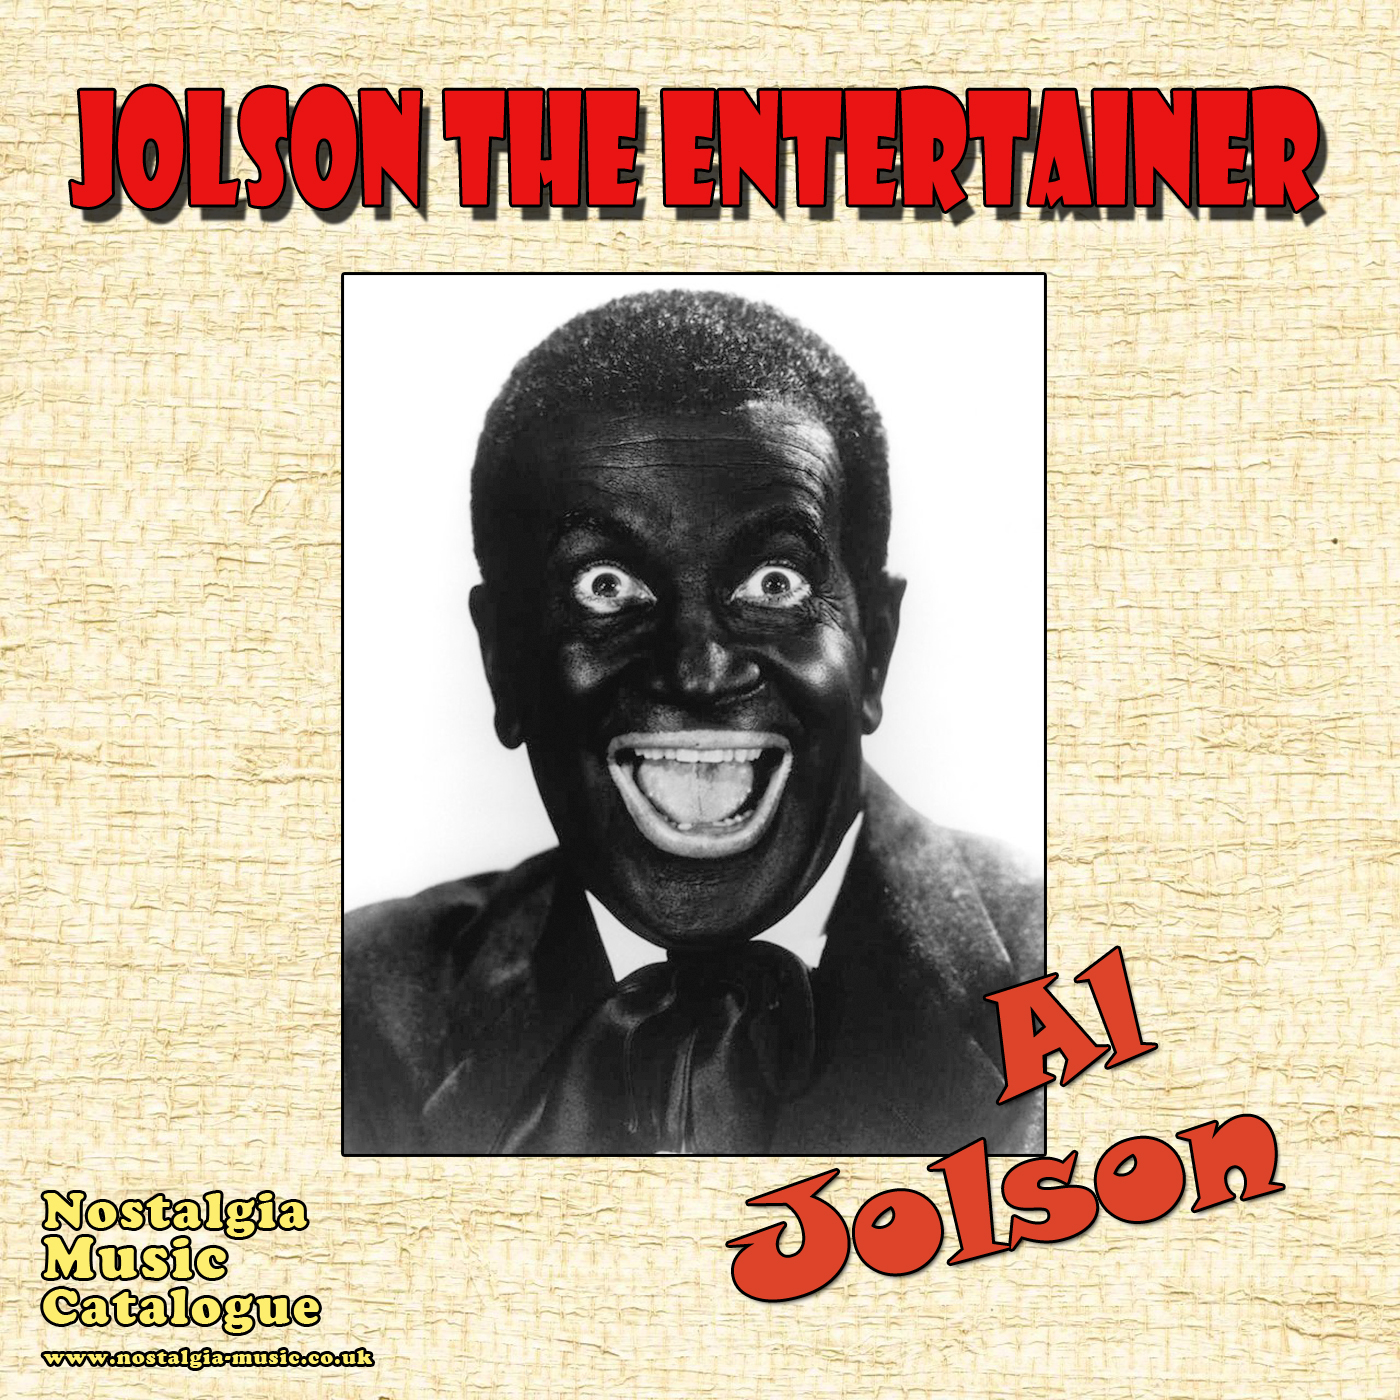 al jolson the entertainer pop nostalgia music catalogue old songs